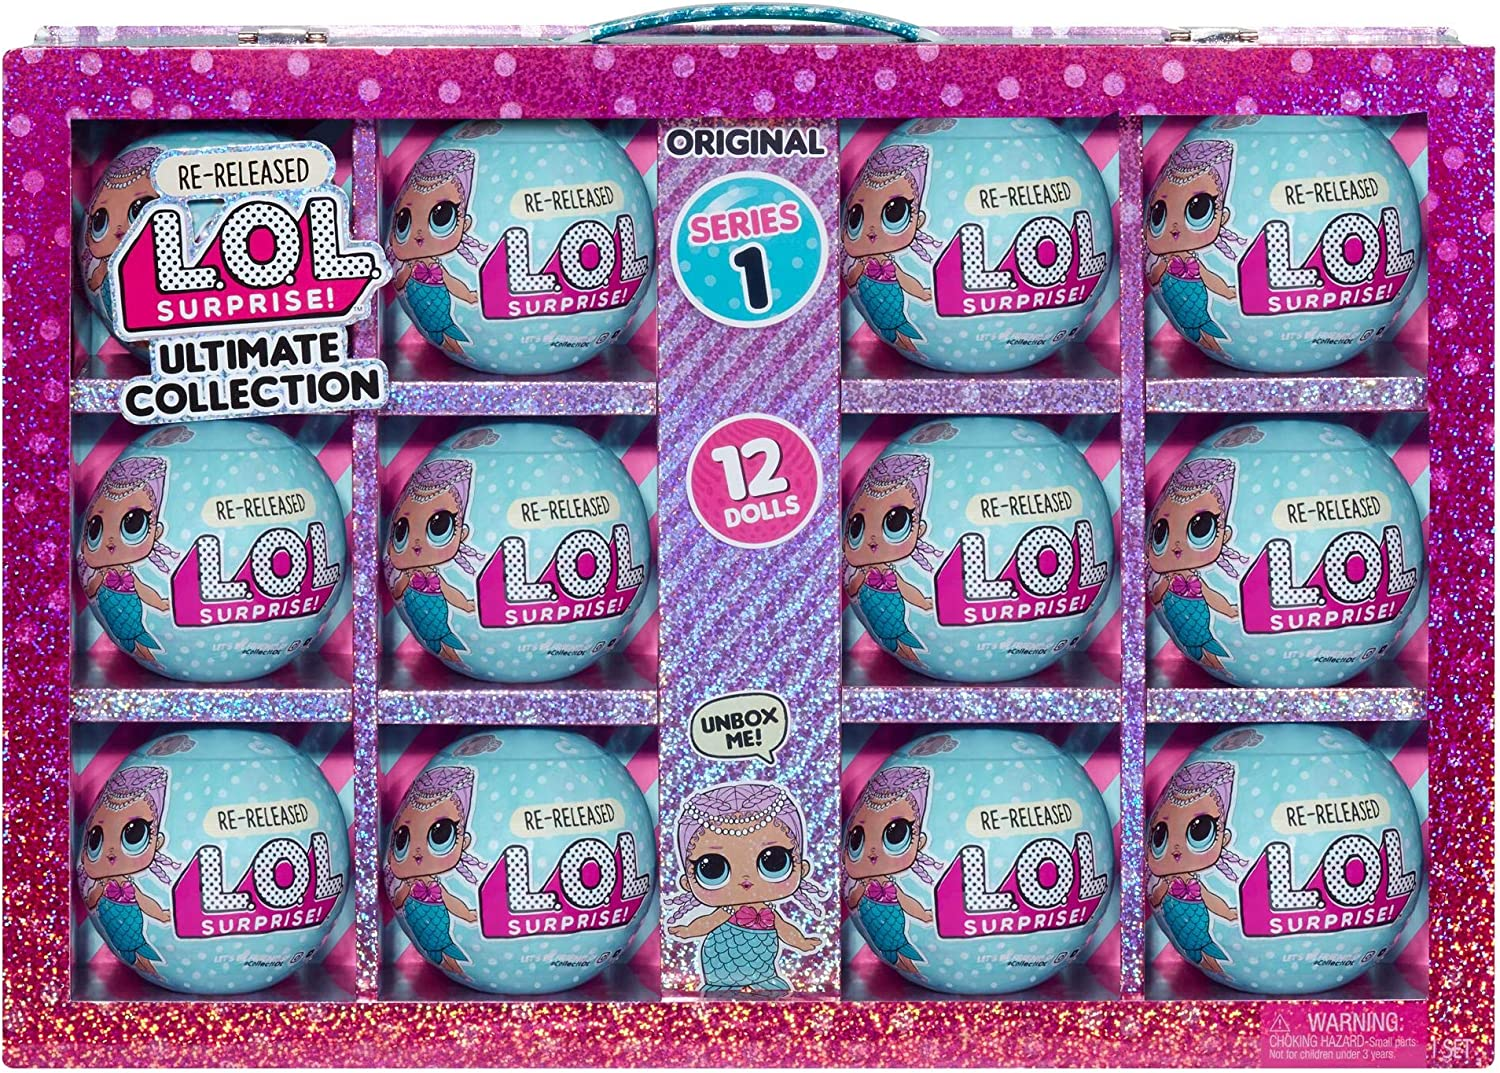 L.O.L. Surprise! Ultimate Collection Merbaby – 12 Re-Released Dolls Series 1